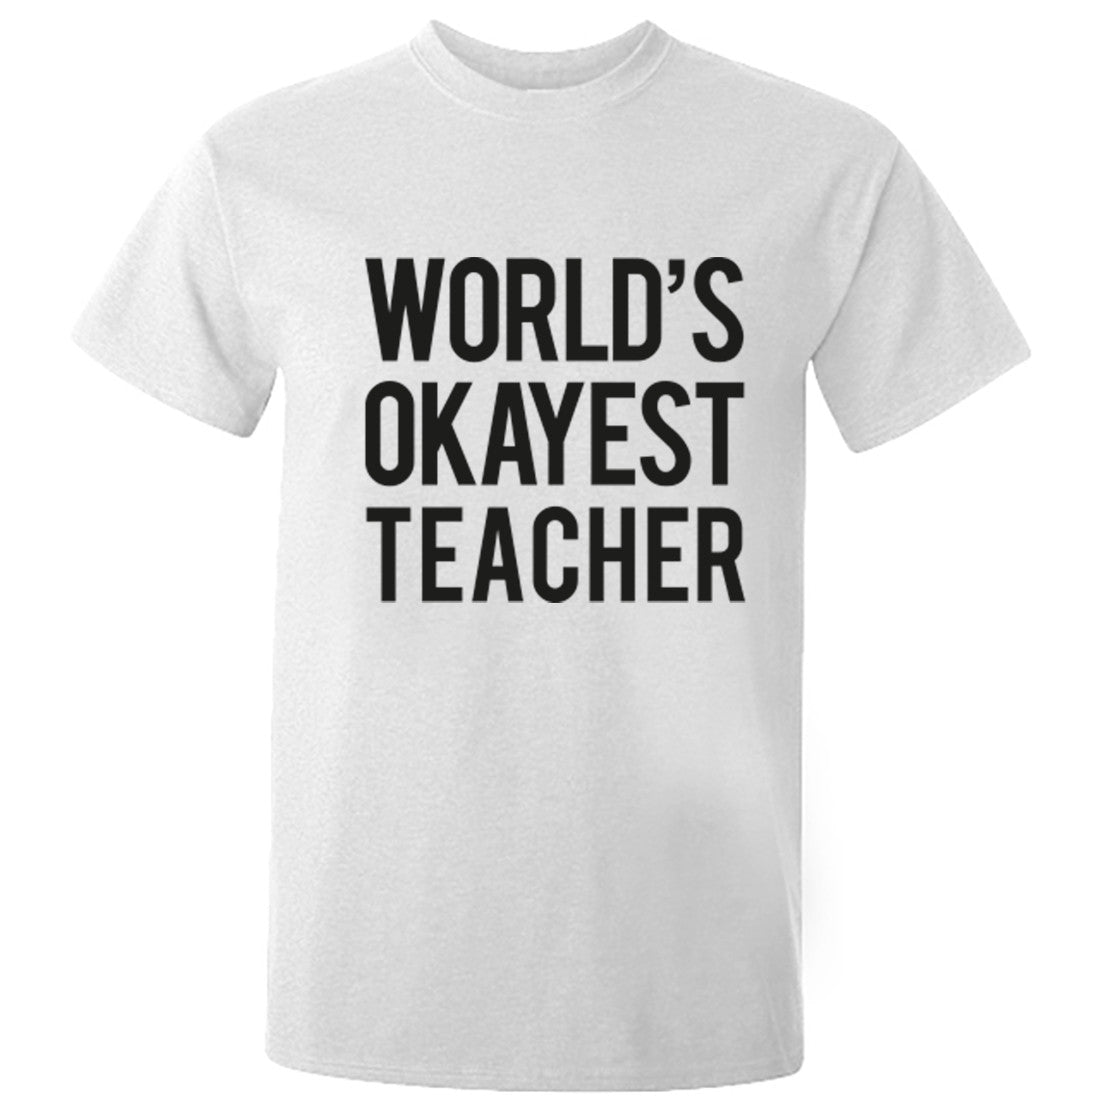 Worlds Okayest Teacher Unisex Fit T-Shirt K0523 - Illustrated Identity Ltd.